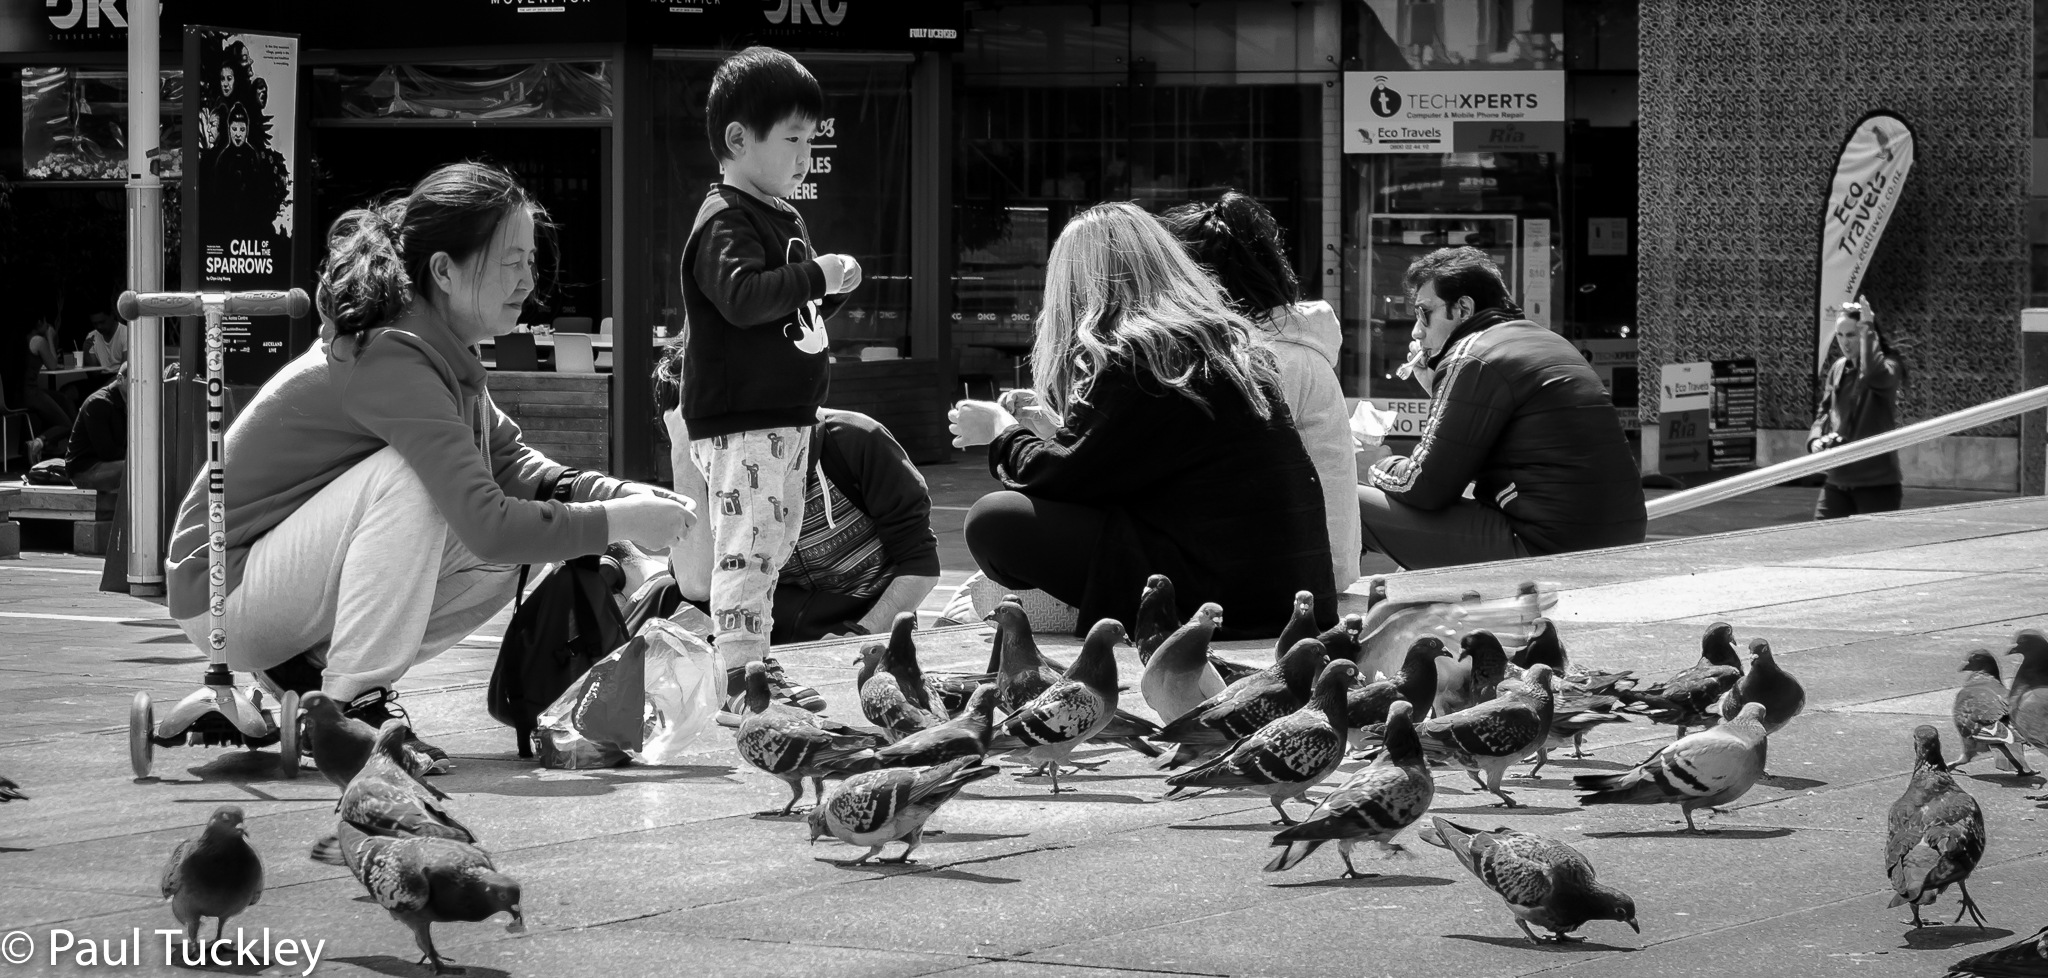 Feeding the pigeons with mum by Paul Tuckley